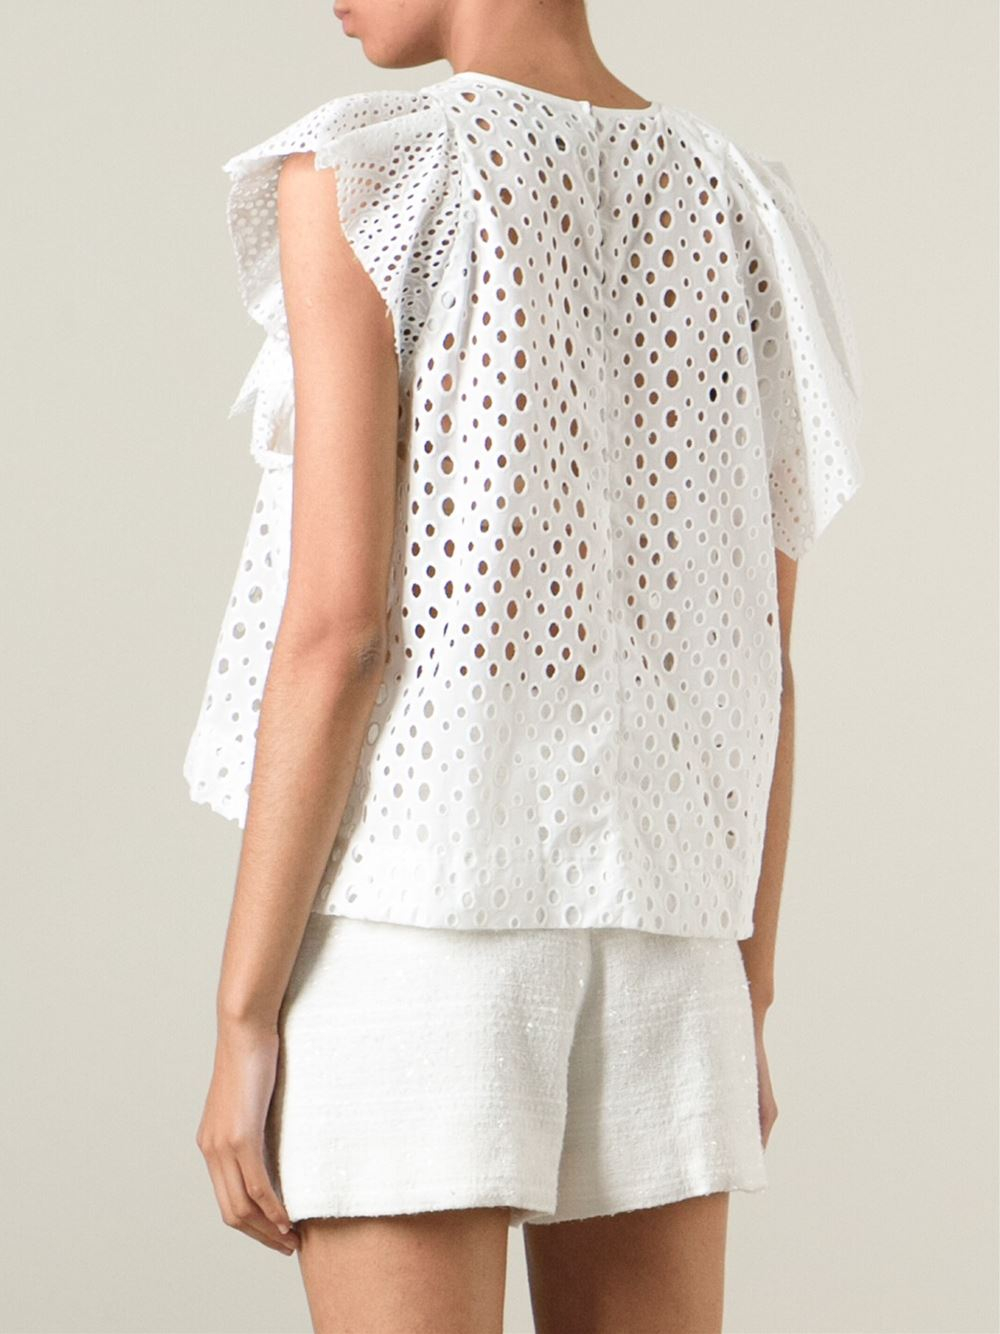 Buy Isabel Marant Women's White Eyelet-lace Elbow-sleeve Ramie Top. Similar products also available. SALE now on!